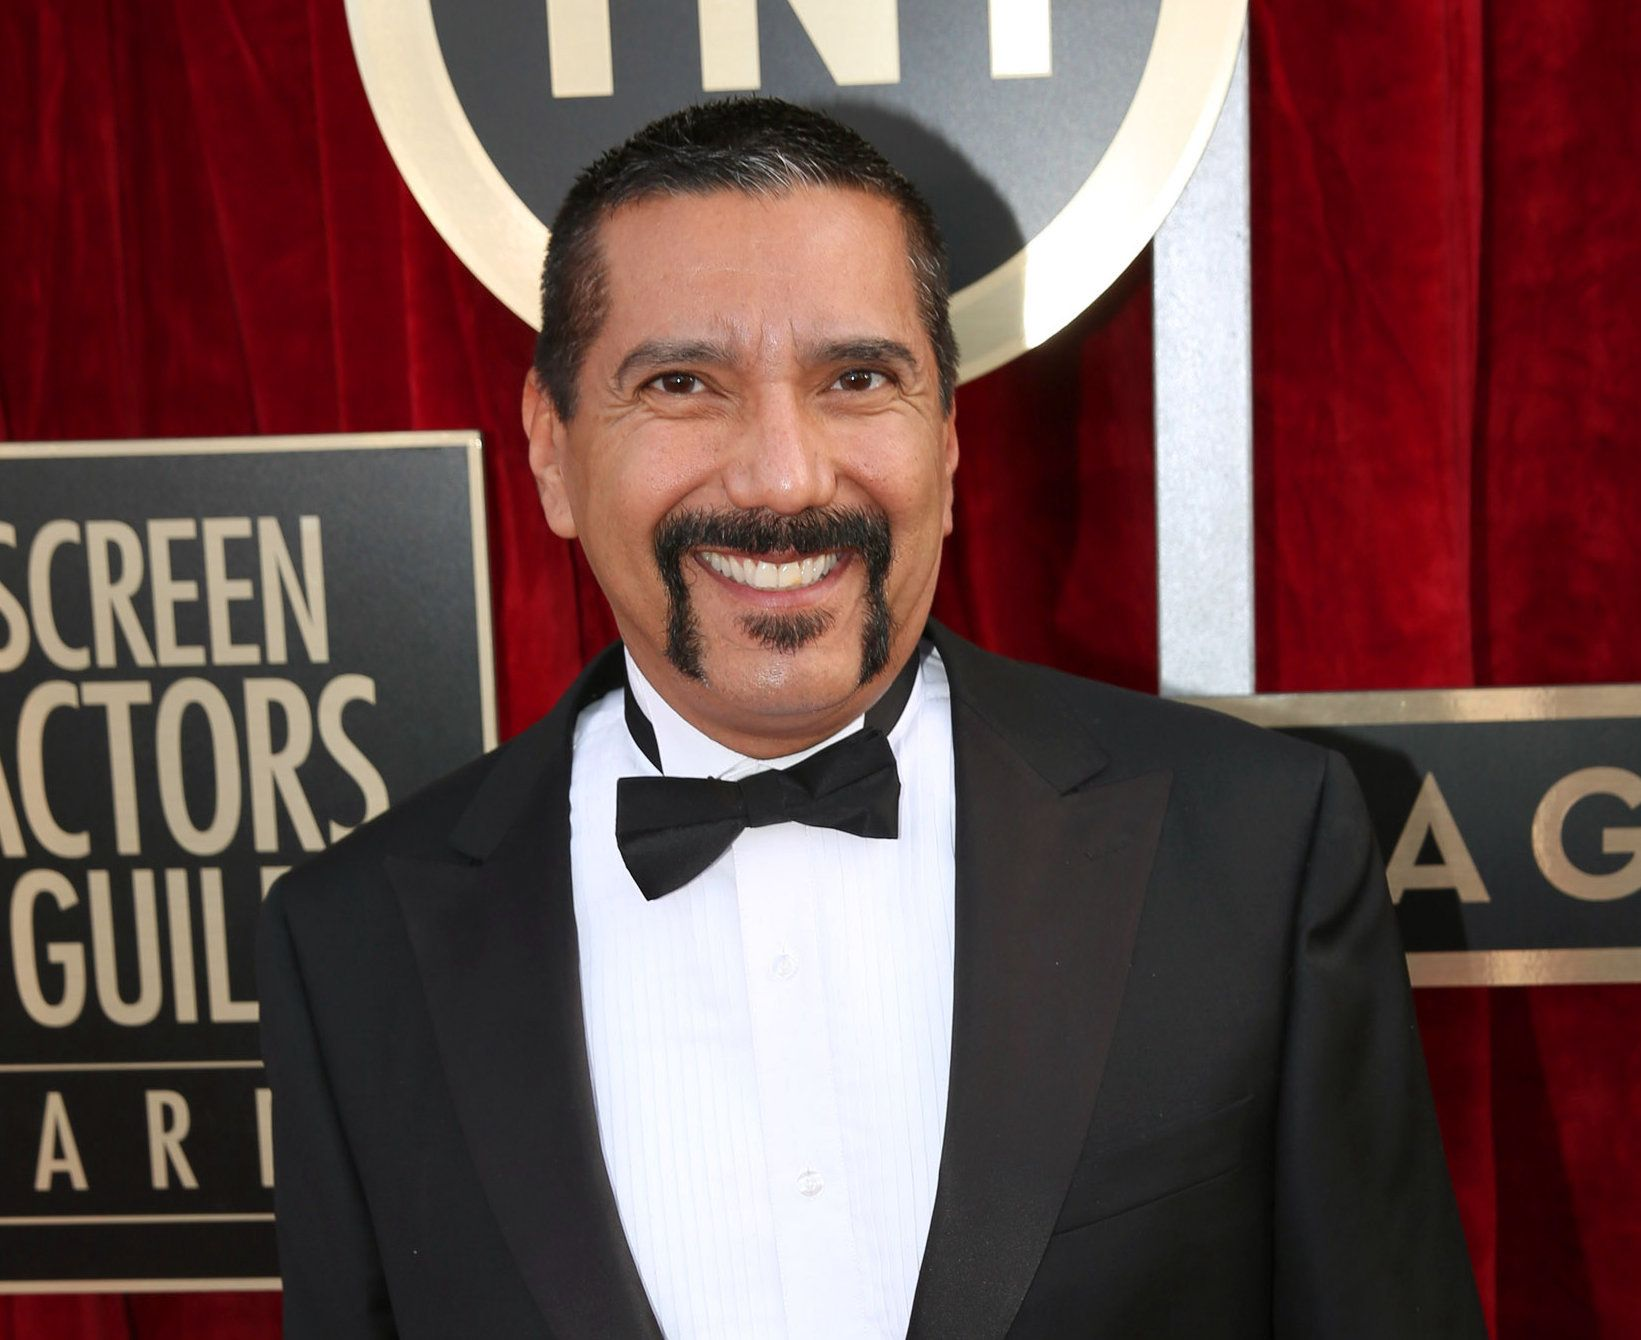 "FILe - In this Jan. 18, 2014 file photo, Steven Michael Quezada an actor on the series ""Breaking Bad,"" arrives at the 20th annual Screen Actors Guild Awards in Los Angeles. Quezada is jumping in a race for a heated county commissioner seat in Albuquerque. Quezada, who played DEA agent Steven Gomez in the hit AMC-TV series ""Breaking Bad"", said Monday, July 20, he will announce this week that he will run for the Bernalillo County Commission. (Photo by Matt Sayles/Invision/AP, File)"